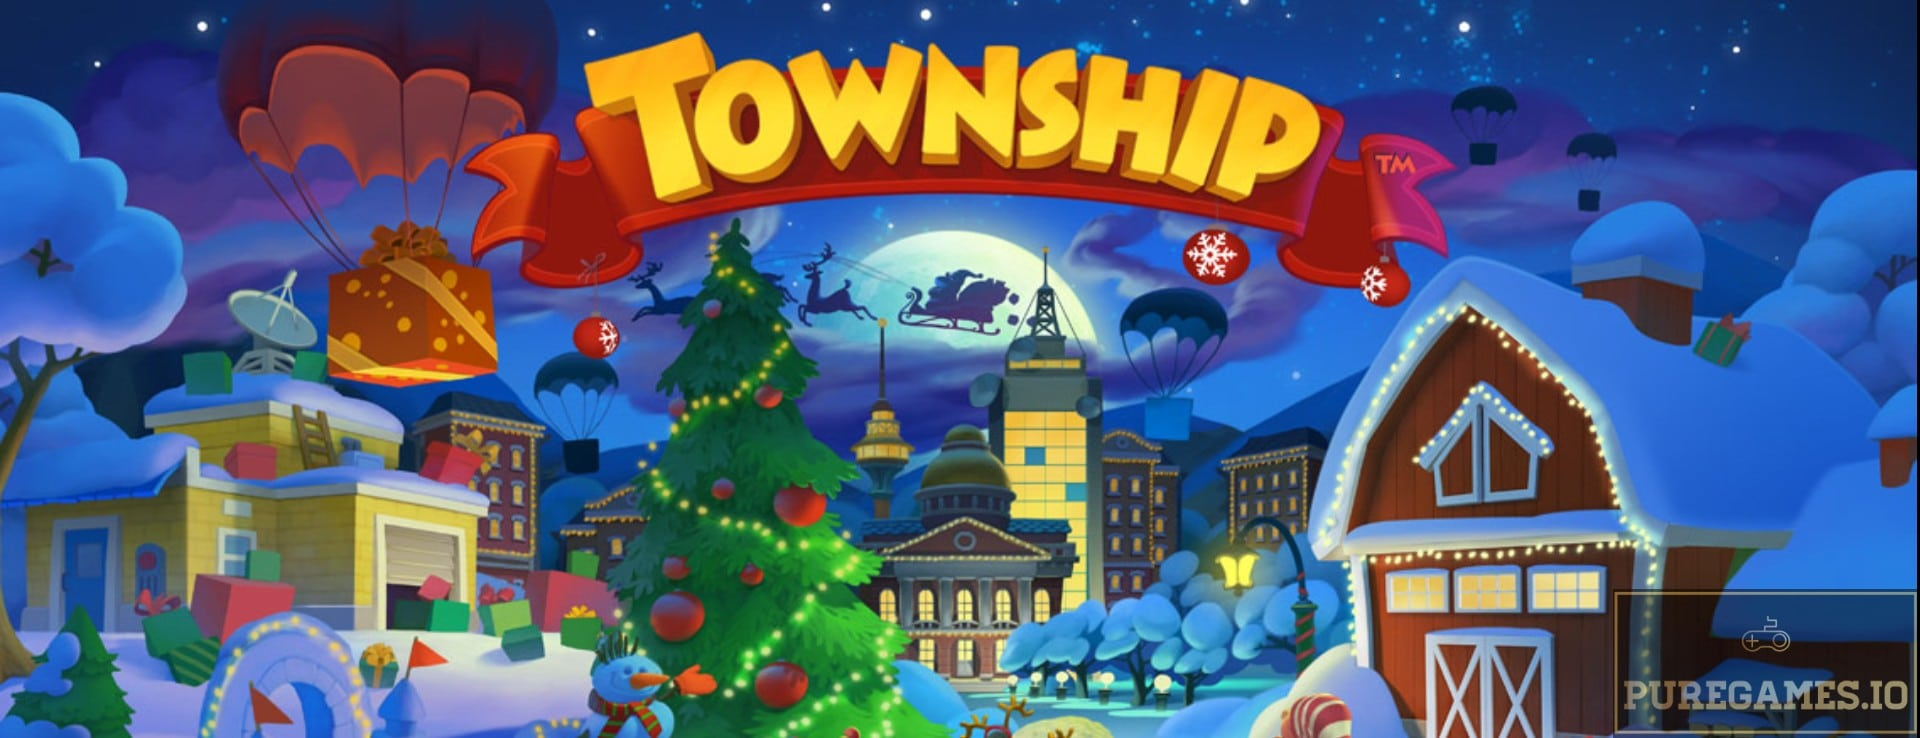 Download Township APK for Android/iOS 4